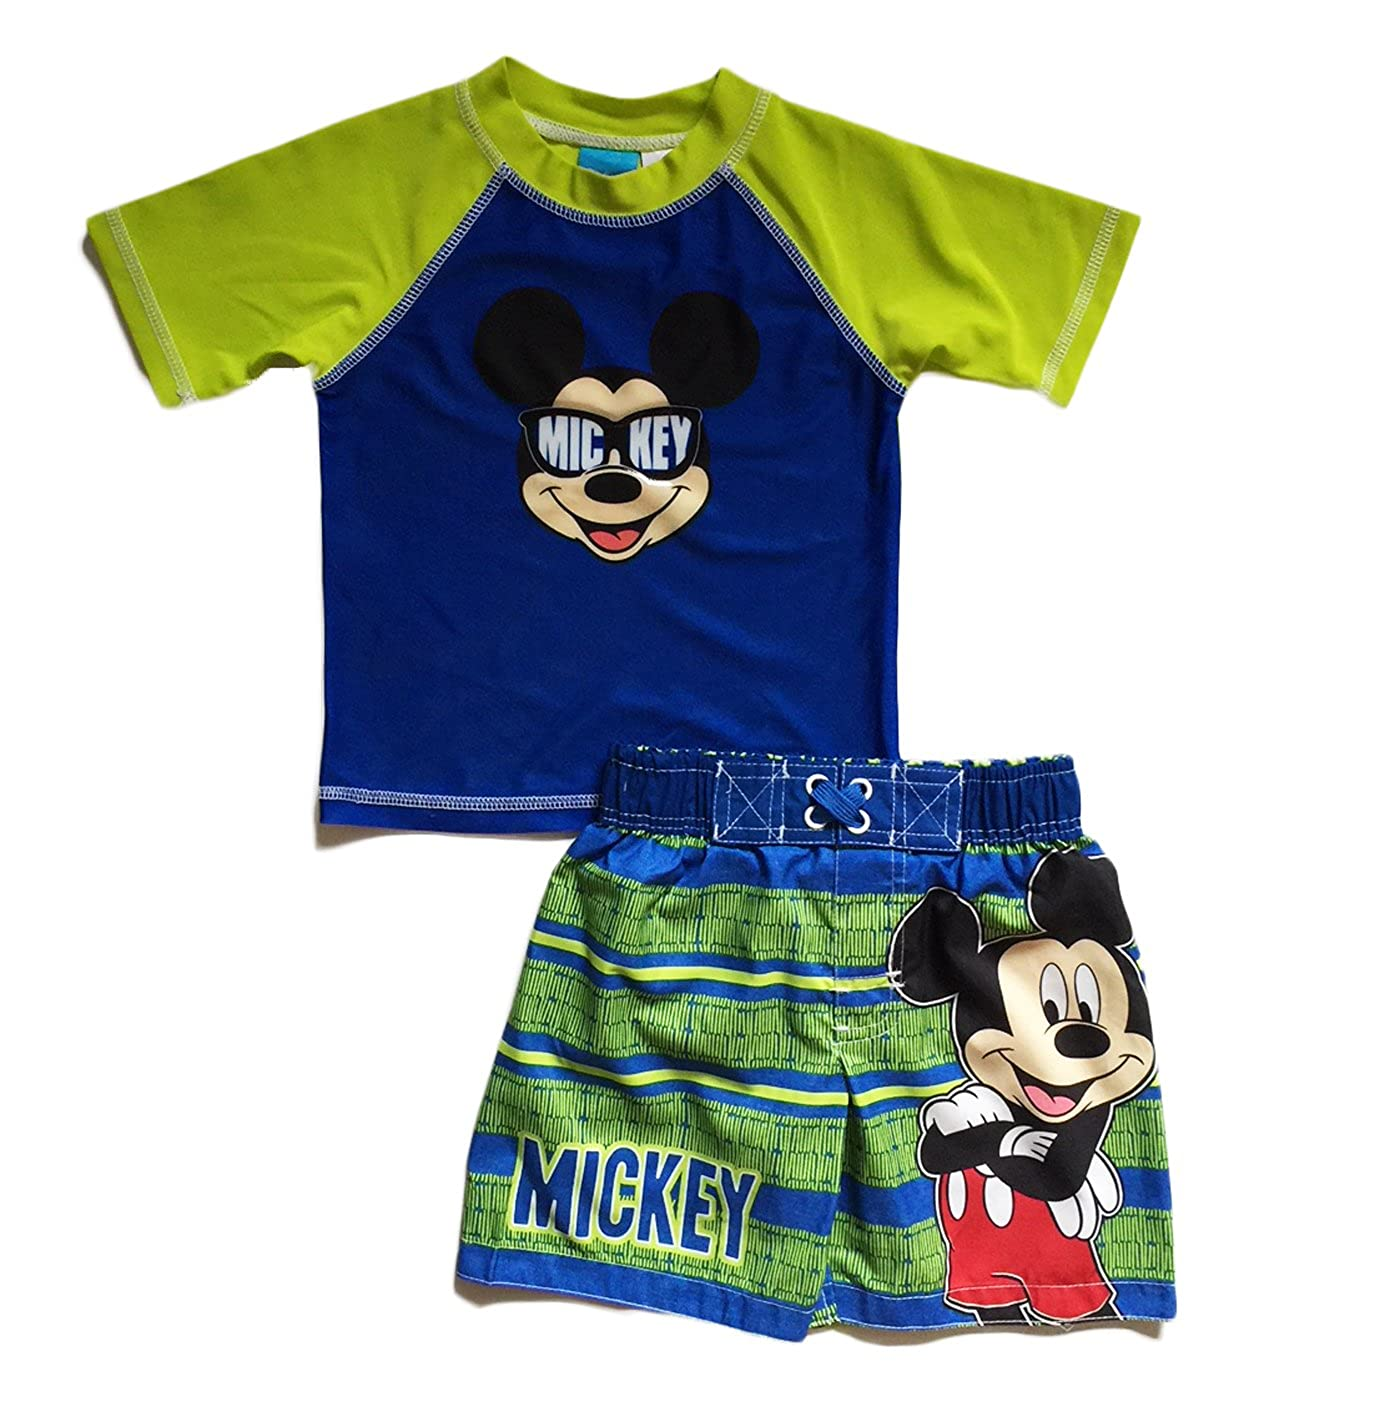 Dreamwave Disney Mickey Mouse Little Boys Toddler Swim Trunks and Rash Guard Shirt Set (2T)